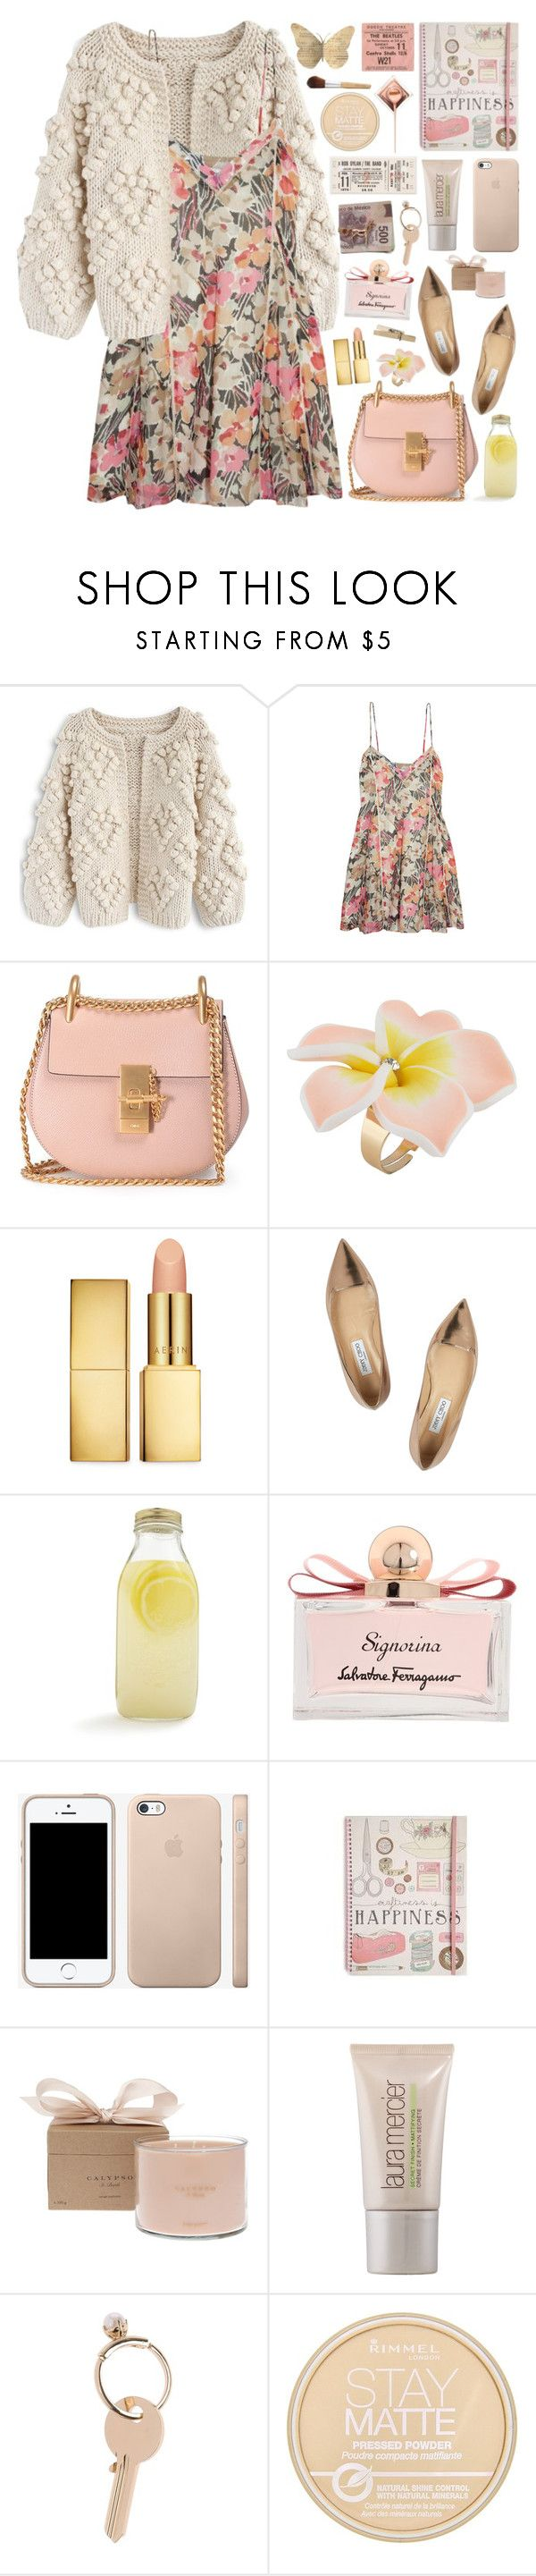 """""""2620. Nothing is going to happen in your comfort zone."""" by chocolatepumma ❤ liked on Polyvore featuring Chicwish, Elizabeth and James, Chloé, ALDO, AERIN, Jimmy Choo, Bormioli Rocco, Salvatore Ferragamo, Calypso Perfume Prod Inc. and Laura Mercier"""